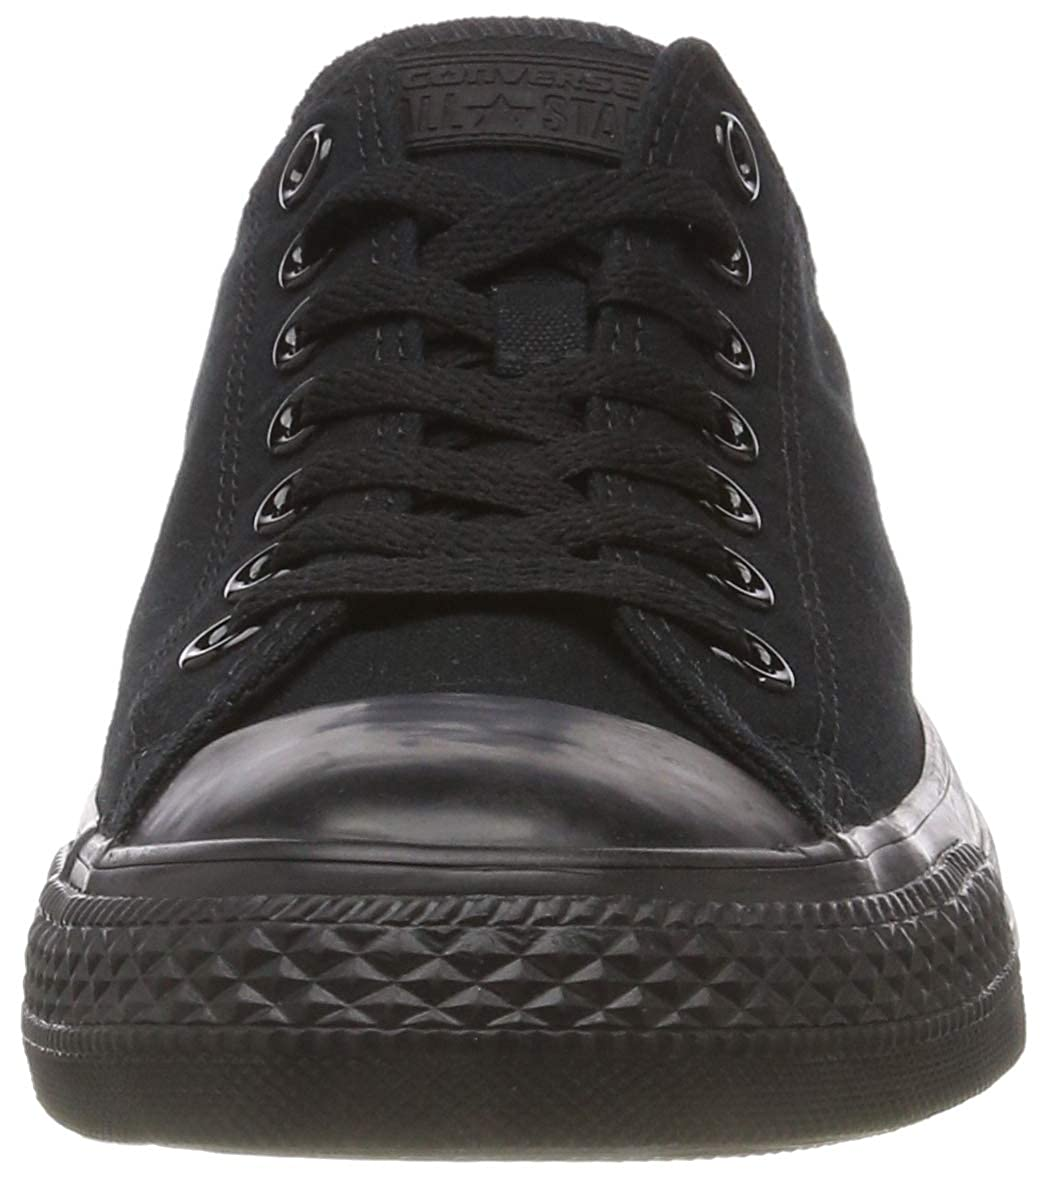 Converse Unisex Unisex Unisex Chuck Taylor All Star Low Top schwarz Monochrome Turnschuhe - 15 B(M) US damen   13 D(M) US Men 1c1279